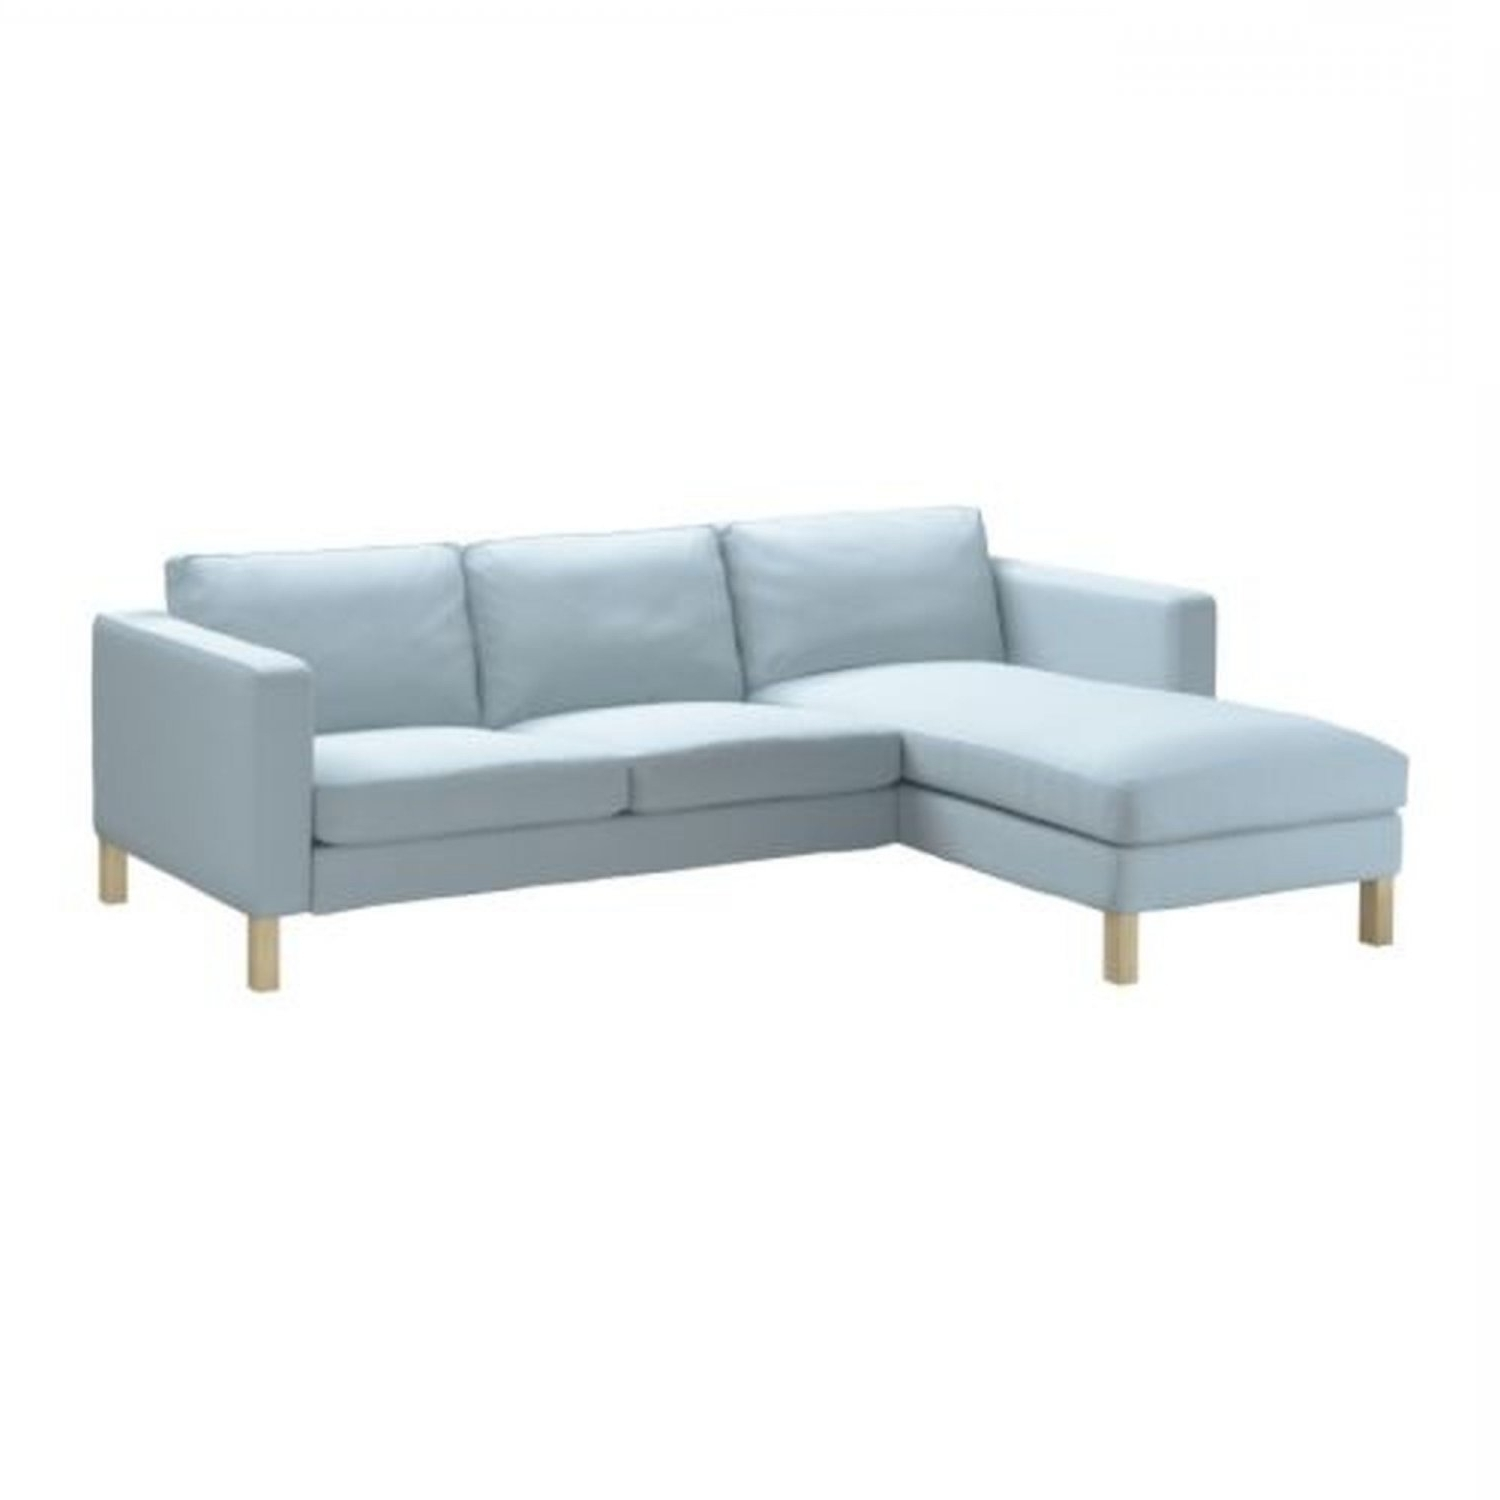 Well Liked Ikea Karlstad Chaises With Furniture: Ikea Karlstad Sofa Ikea Kivik Chair Discontinued (View 8 of 15)